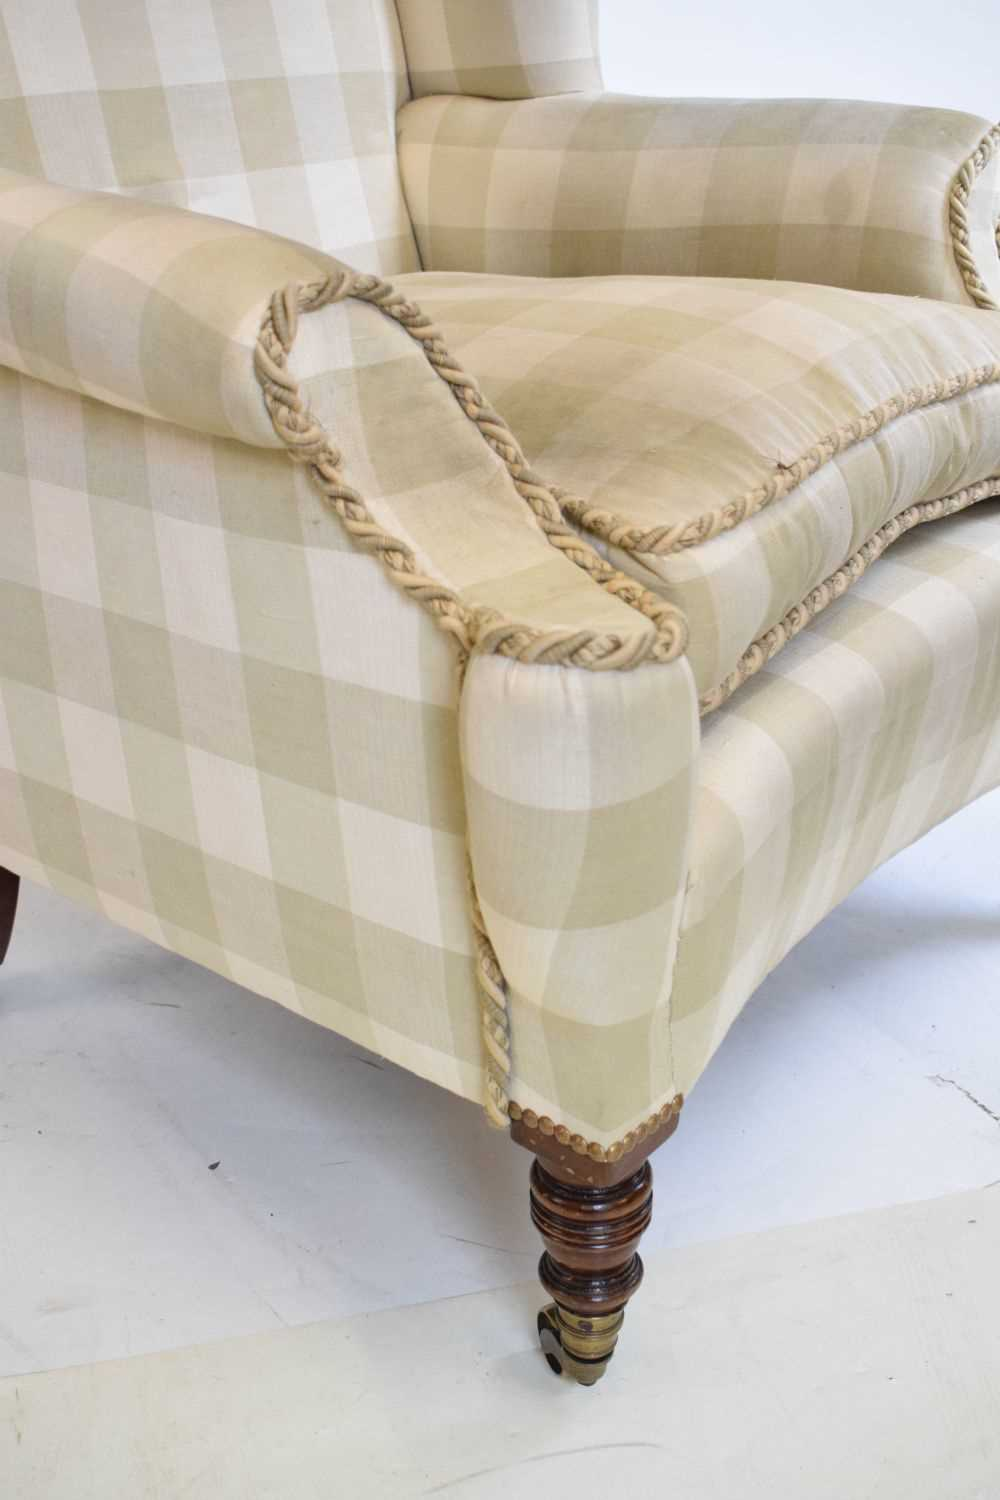 Attributed to Howard & Sons - Late 19th or early 20th Century wing armchair - Image 3 of 10